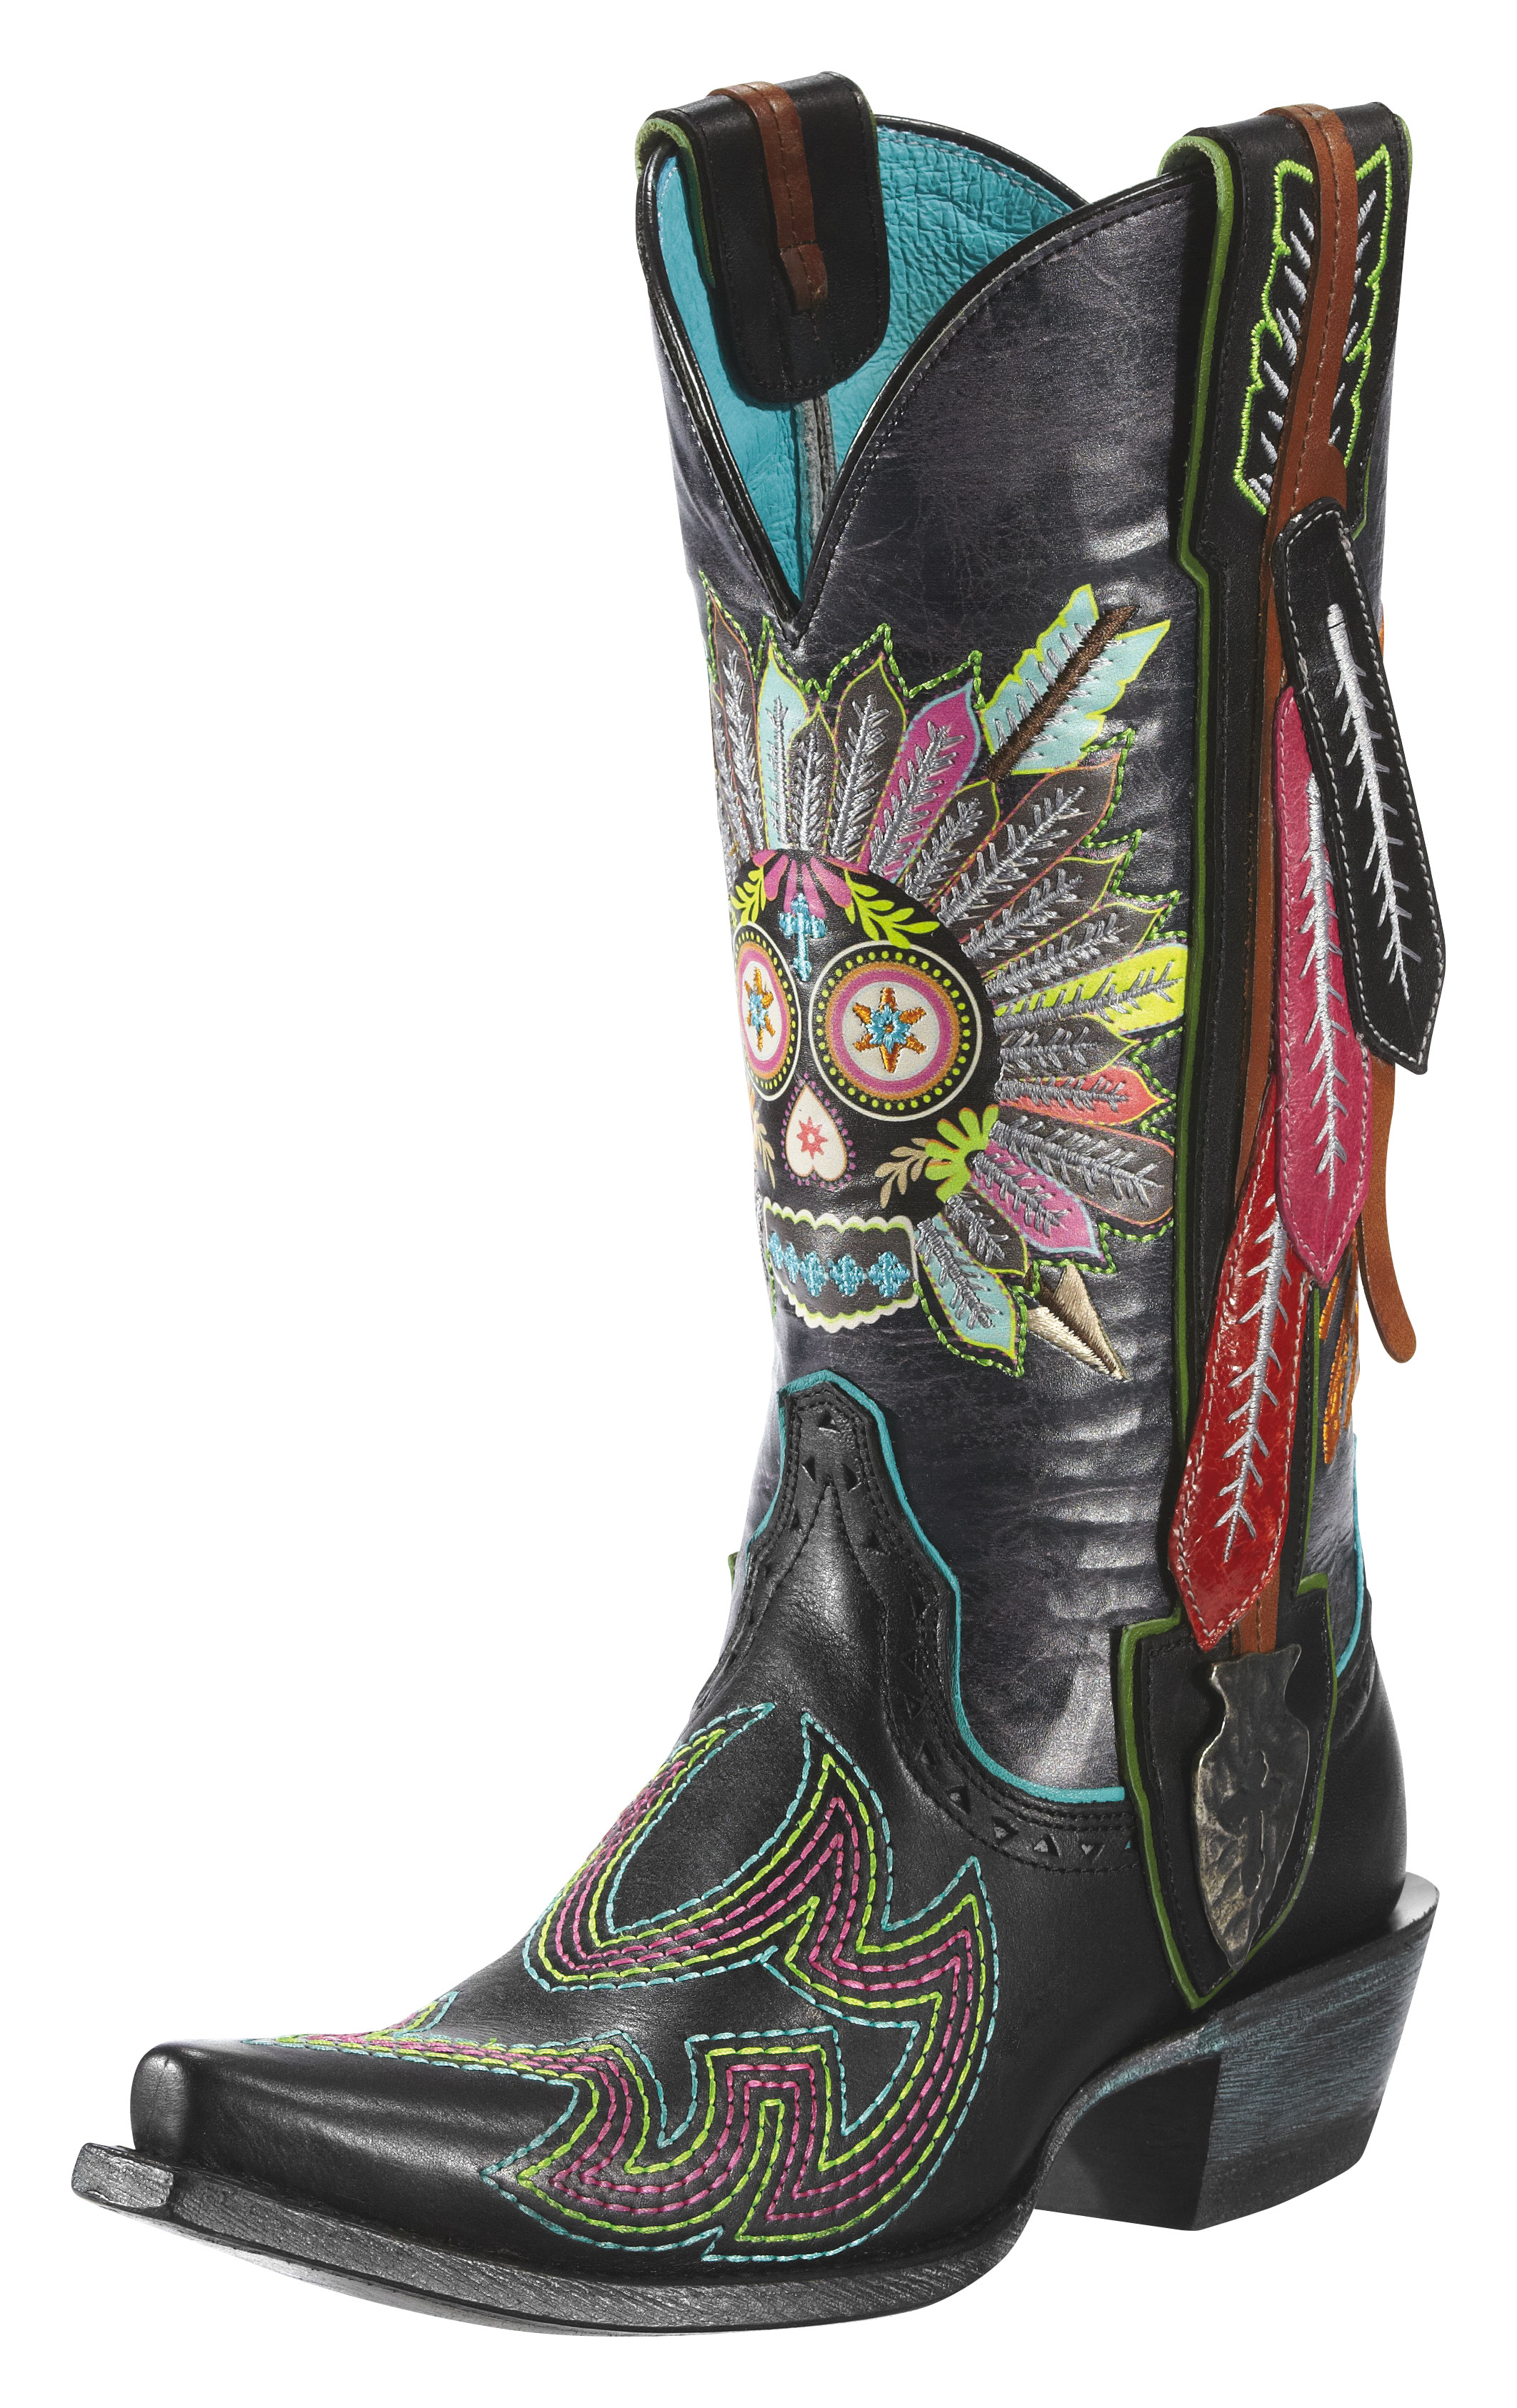 Ariat & Gypsy Soule Cowboy Boot Collection